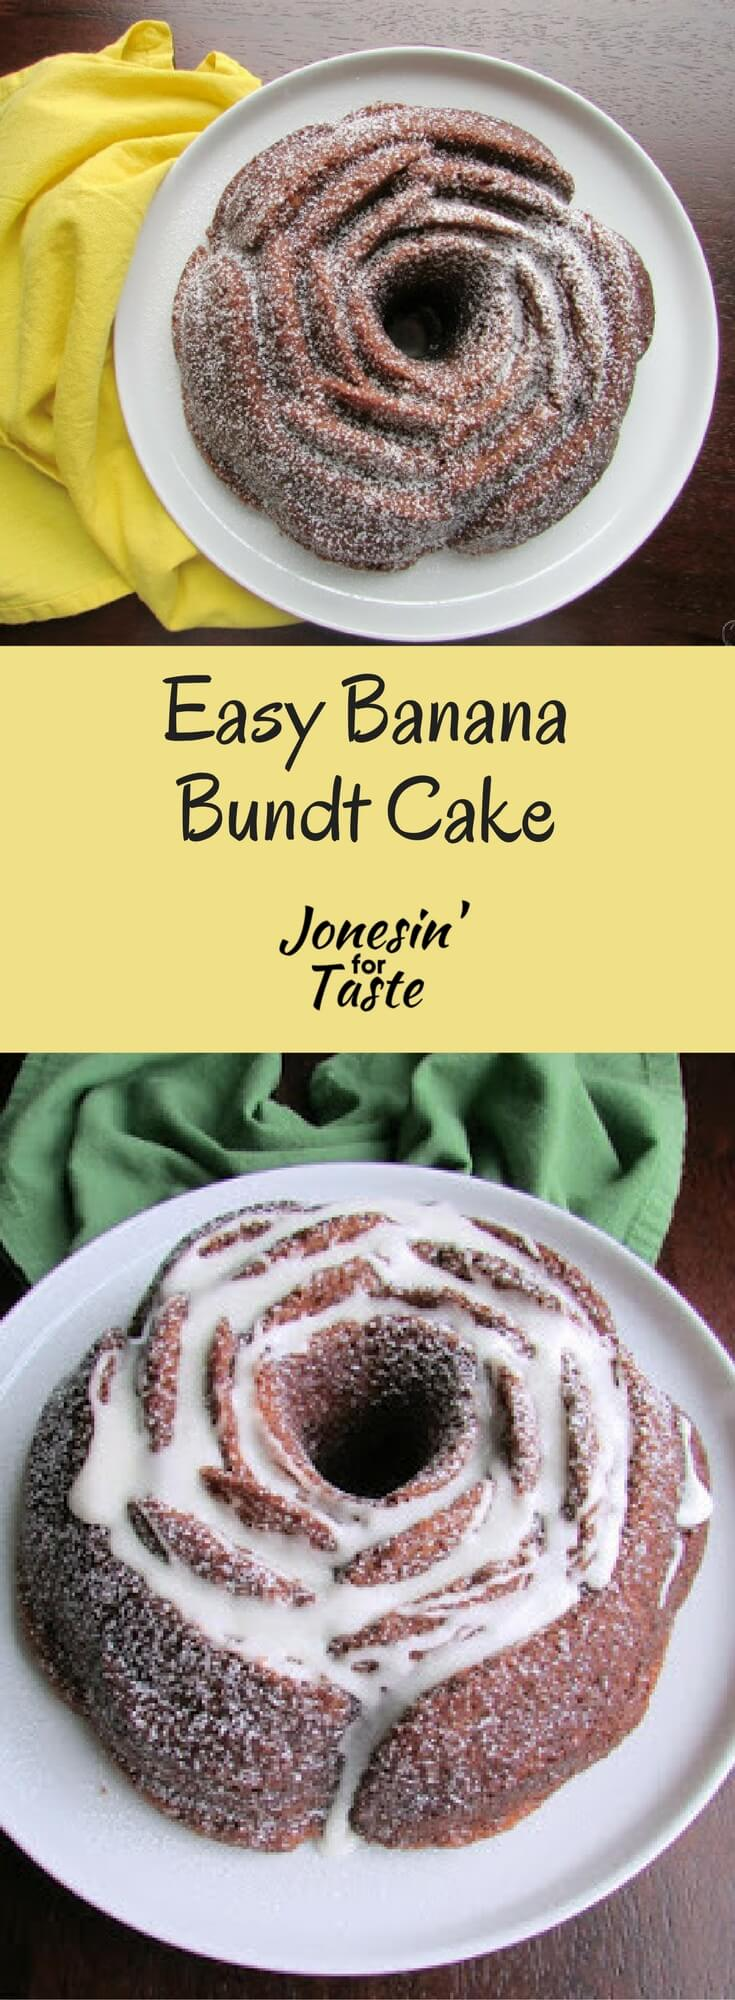 This gorgeous Banana Bundt Cake is deceptively easy when baked in a beautiful tin and lovely with a simple glaze or powdered sugar dusting.